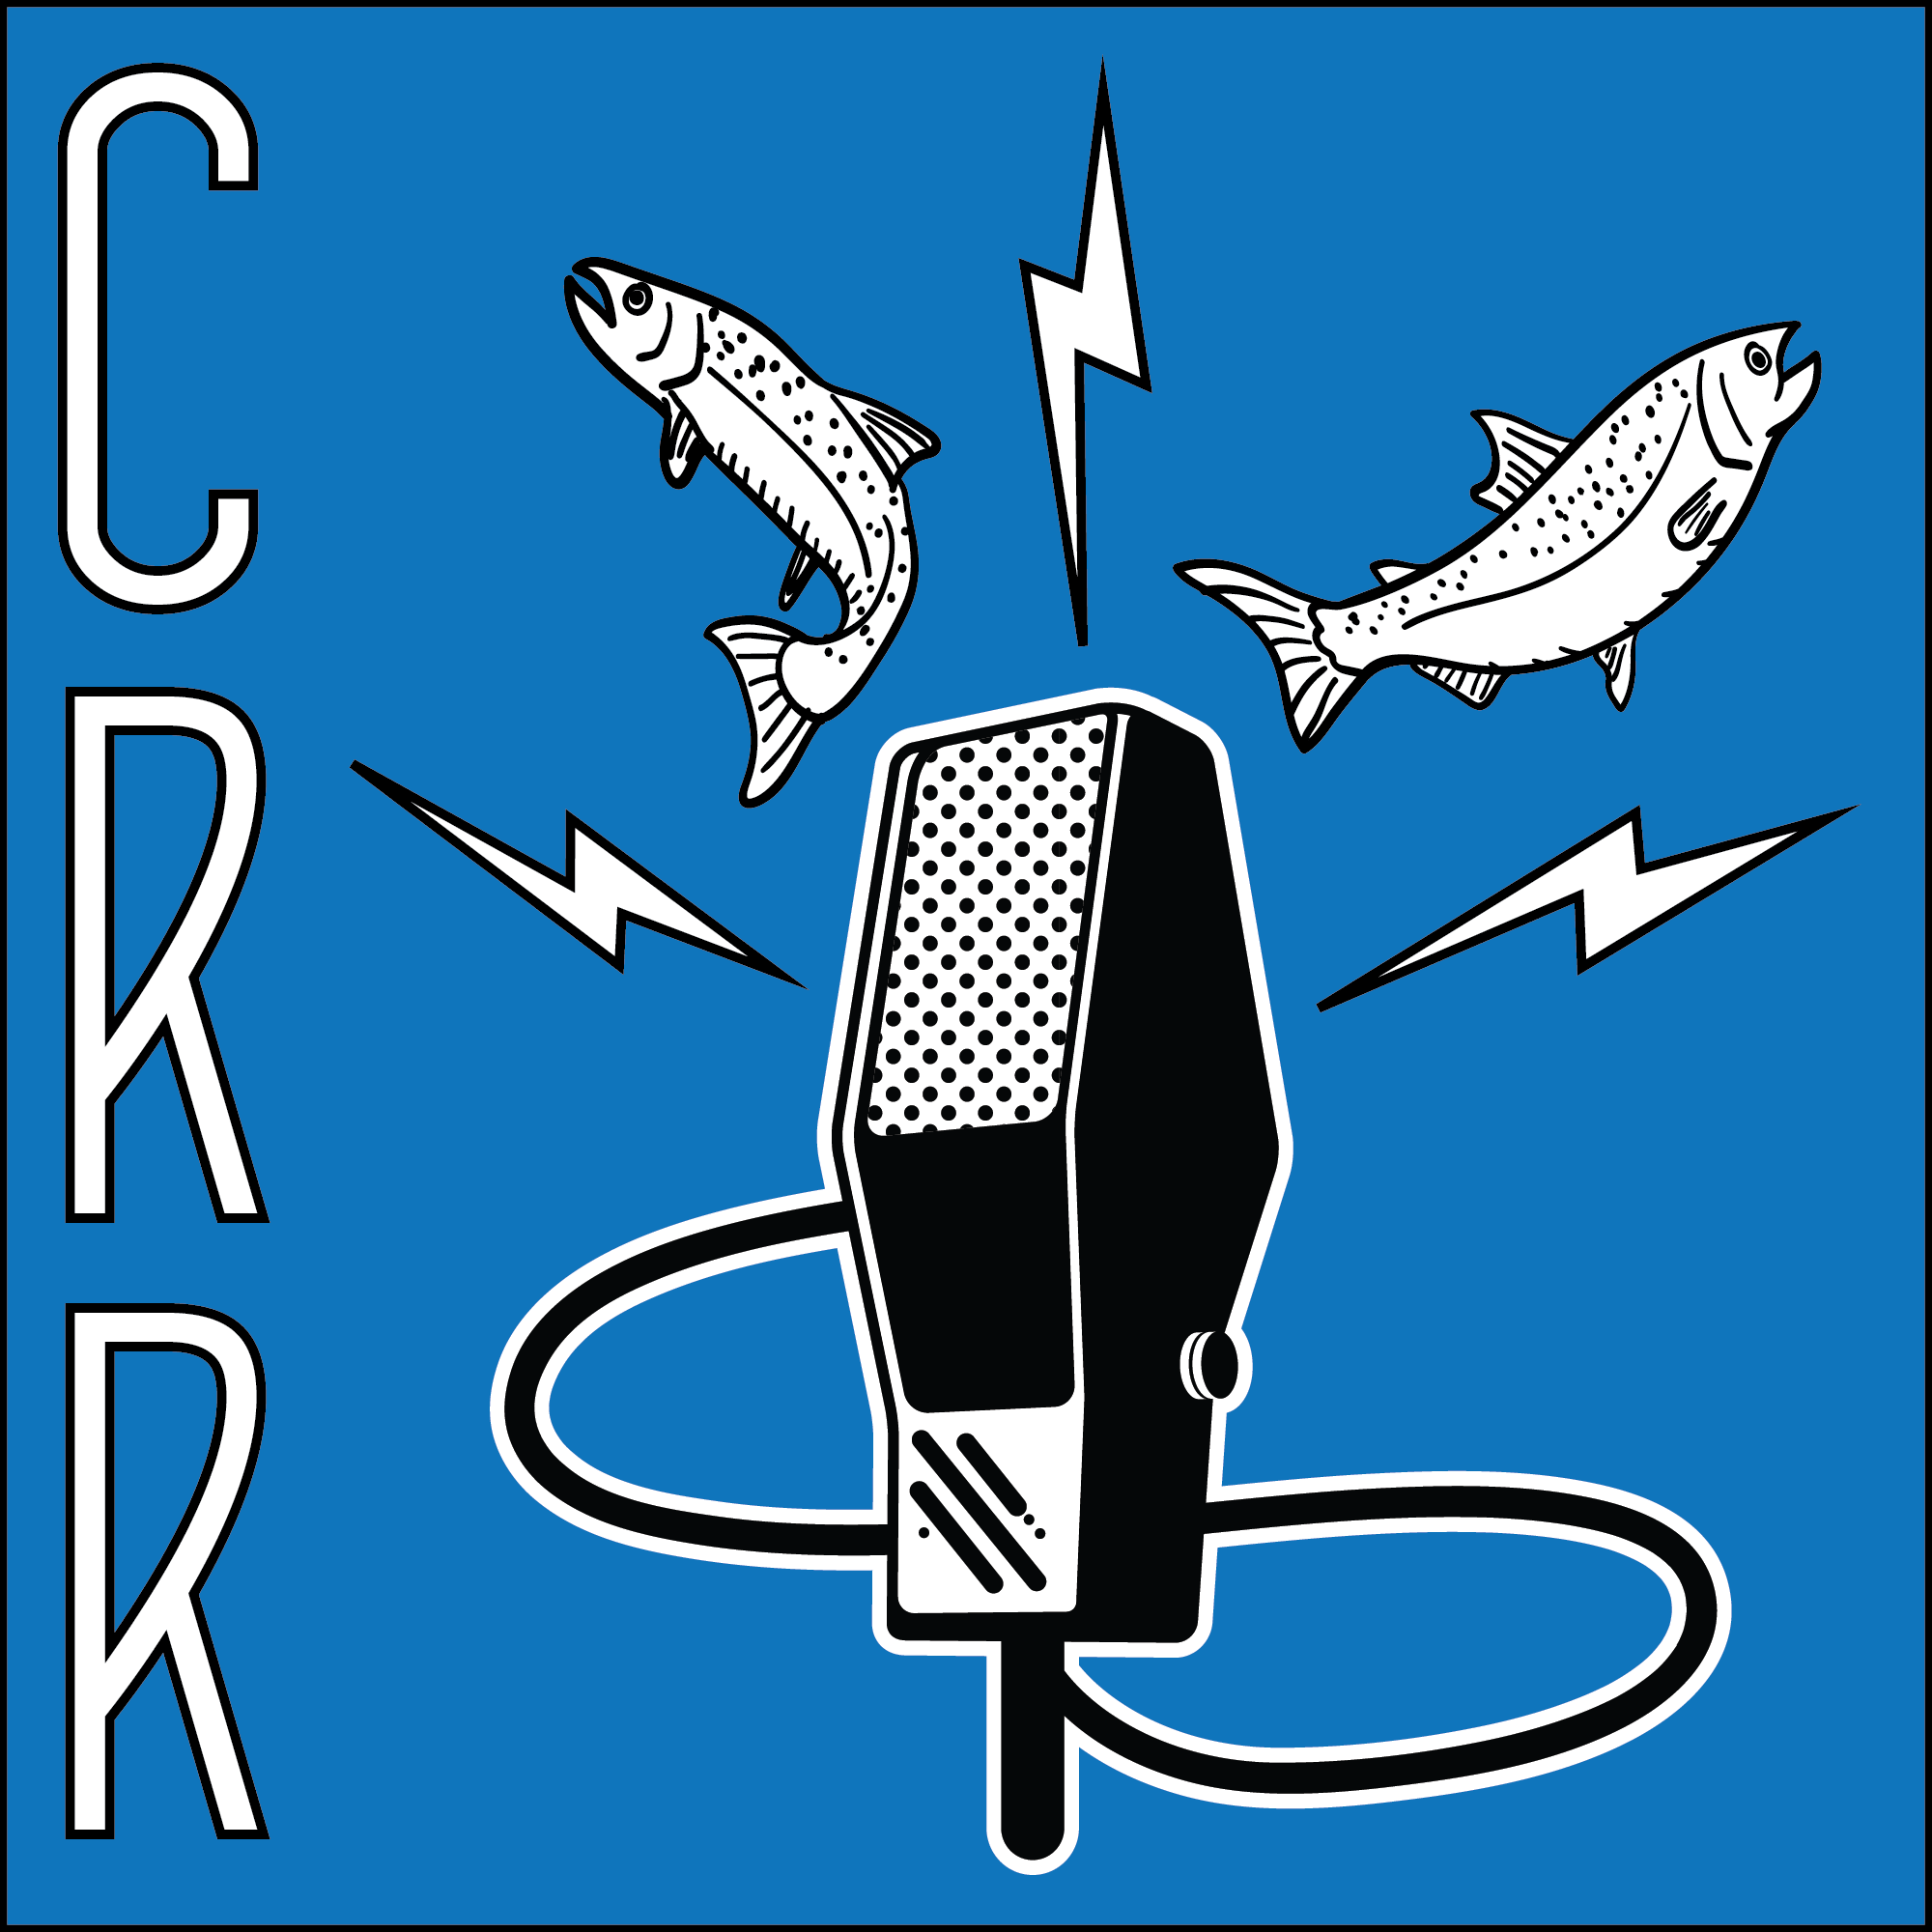 CRR logo of classic microphone emanating two fish and three electric bolts